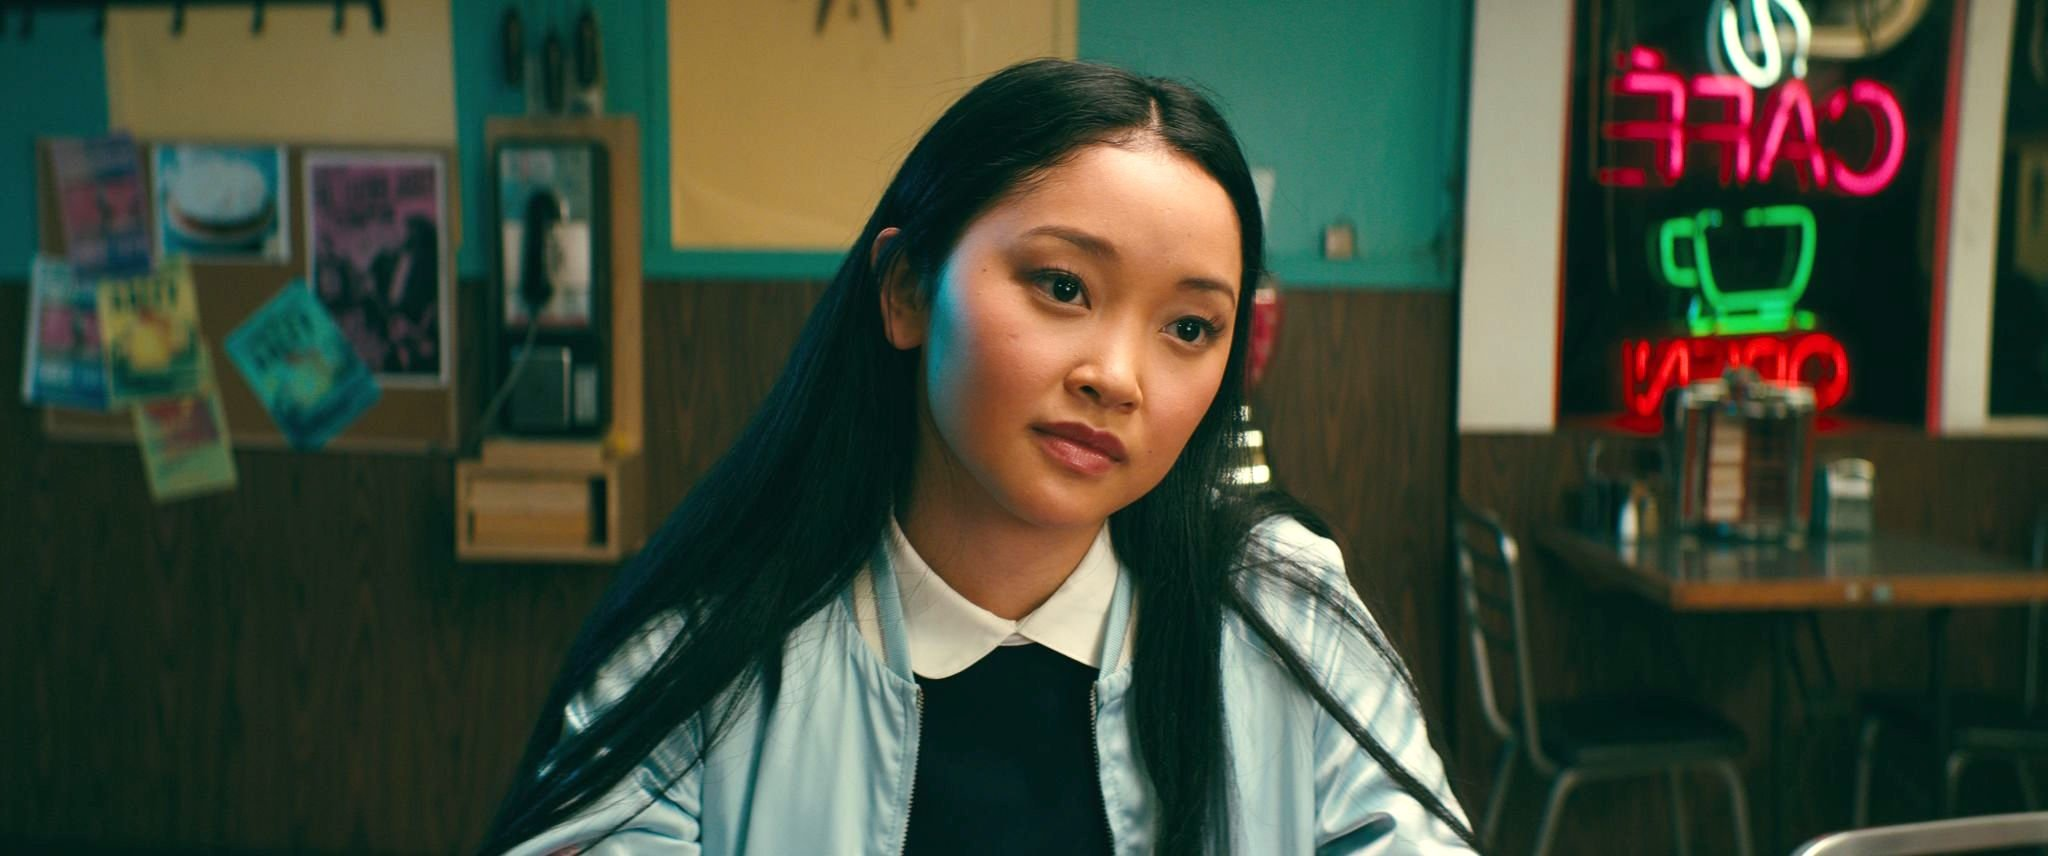 'To All the Boys I've Loved Before' Sequel Is a Go at Netflix